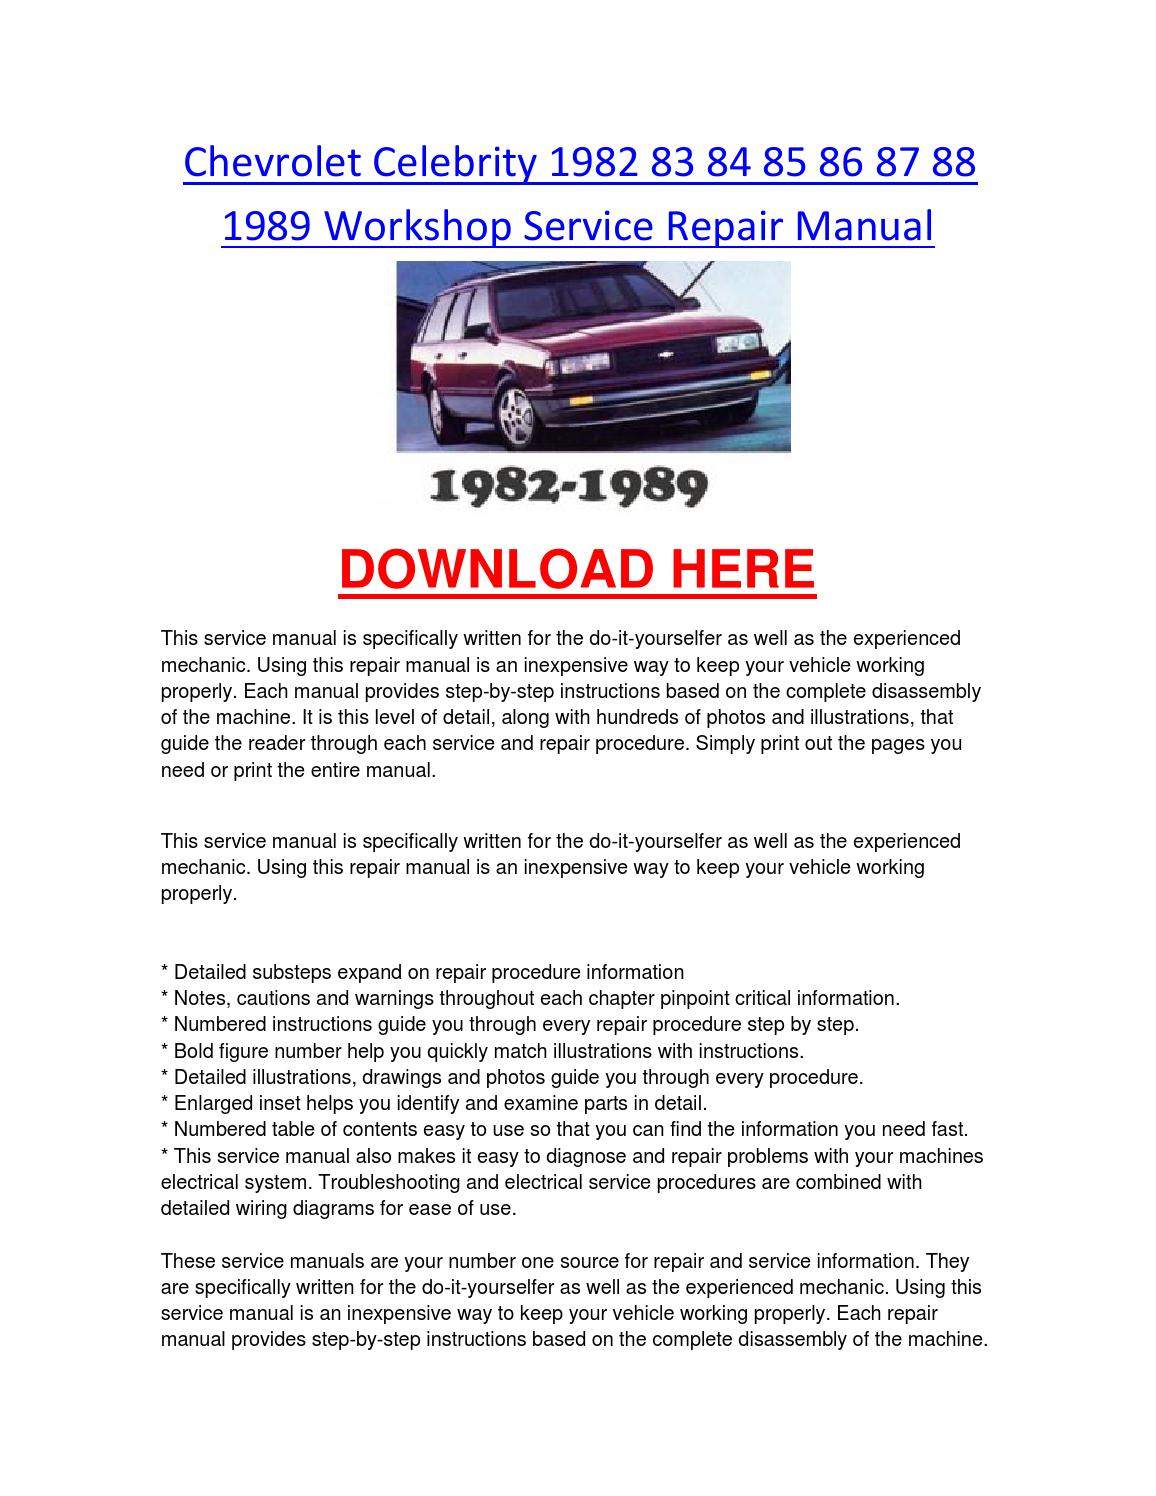 Chevrolet celebrity 1982 83 84 85 86 87 88 1989 workshop service repair  manual by chevroletservice - issuu